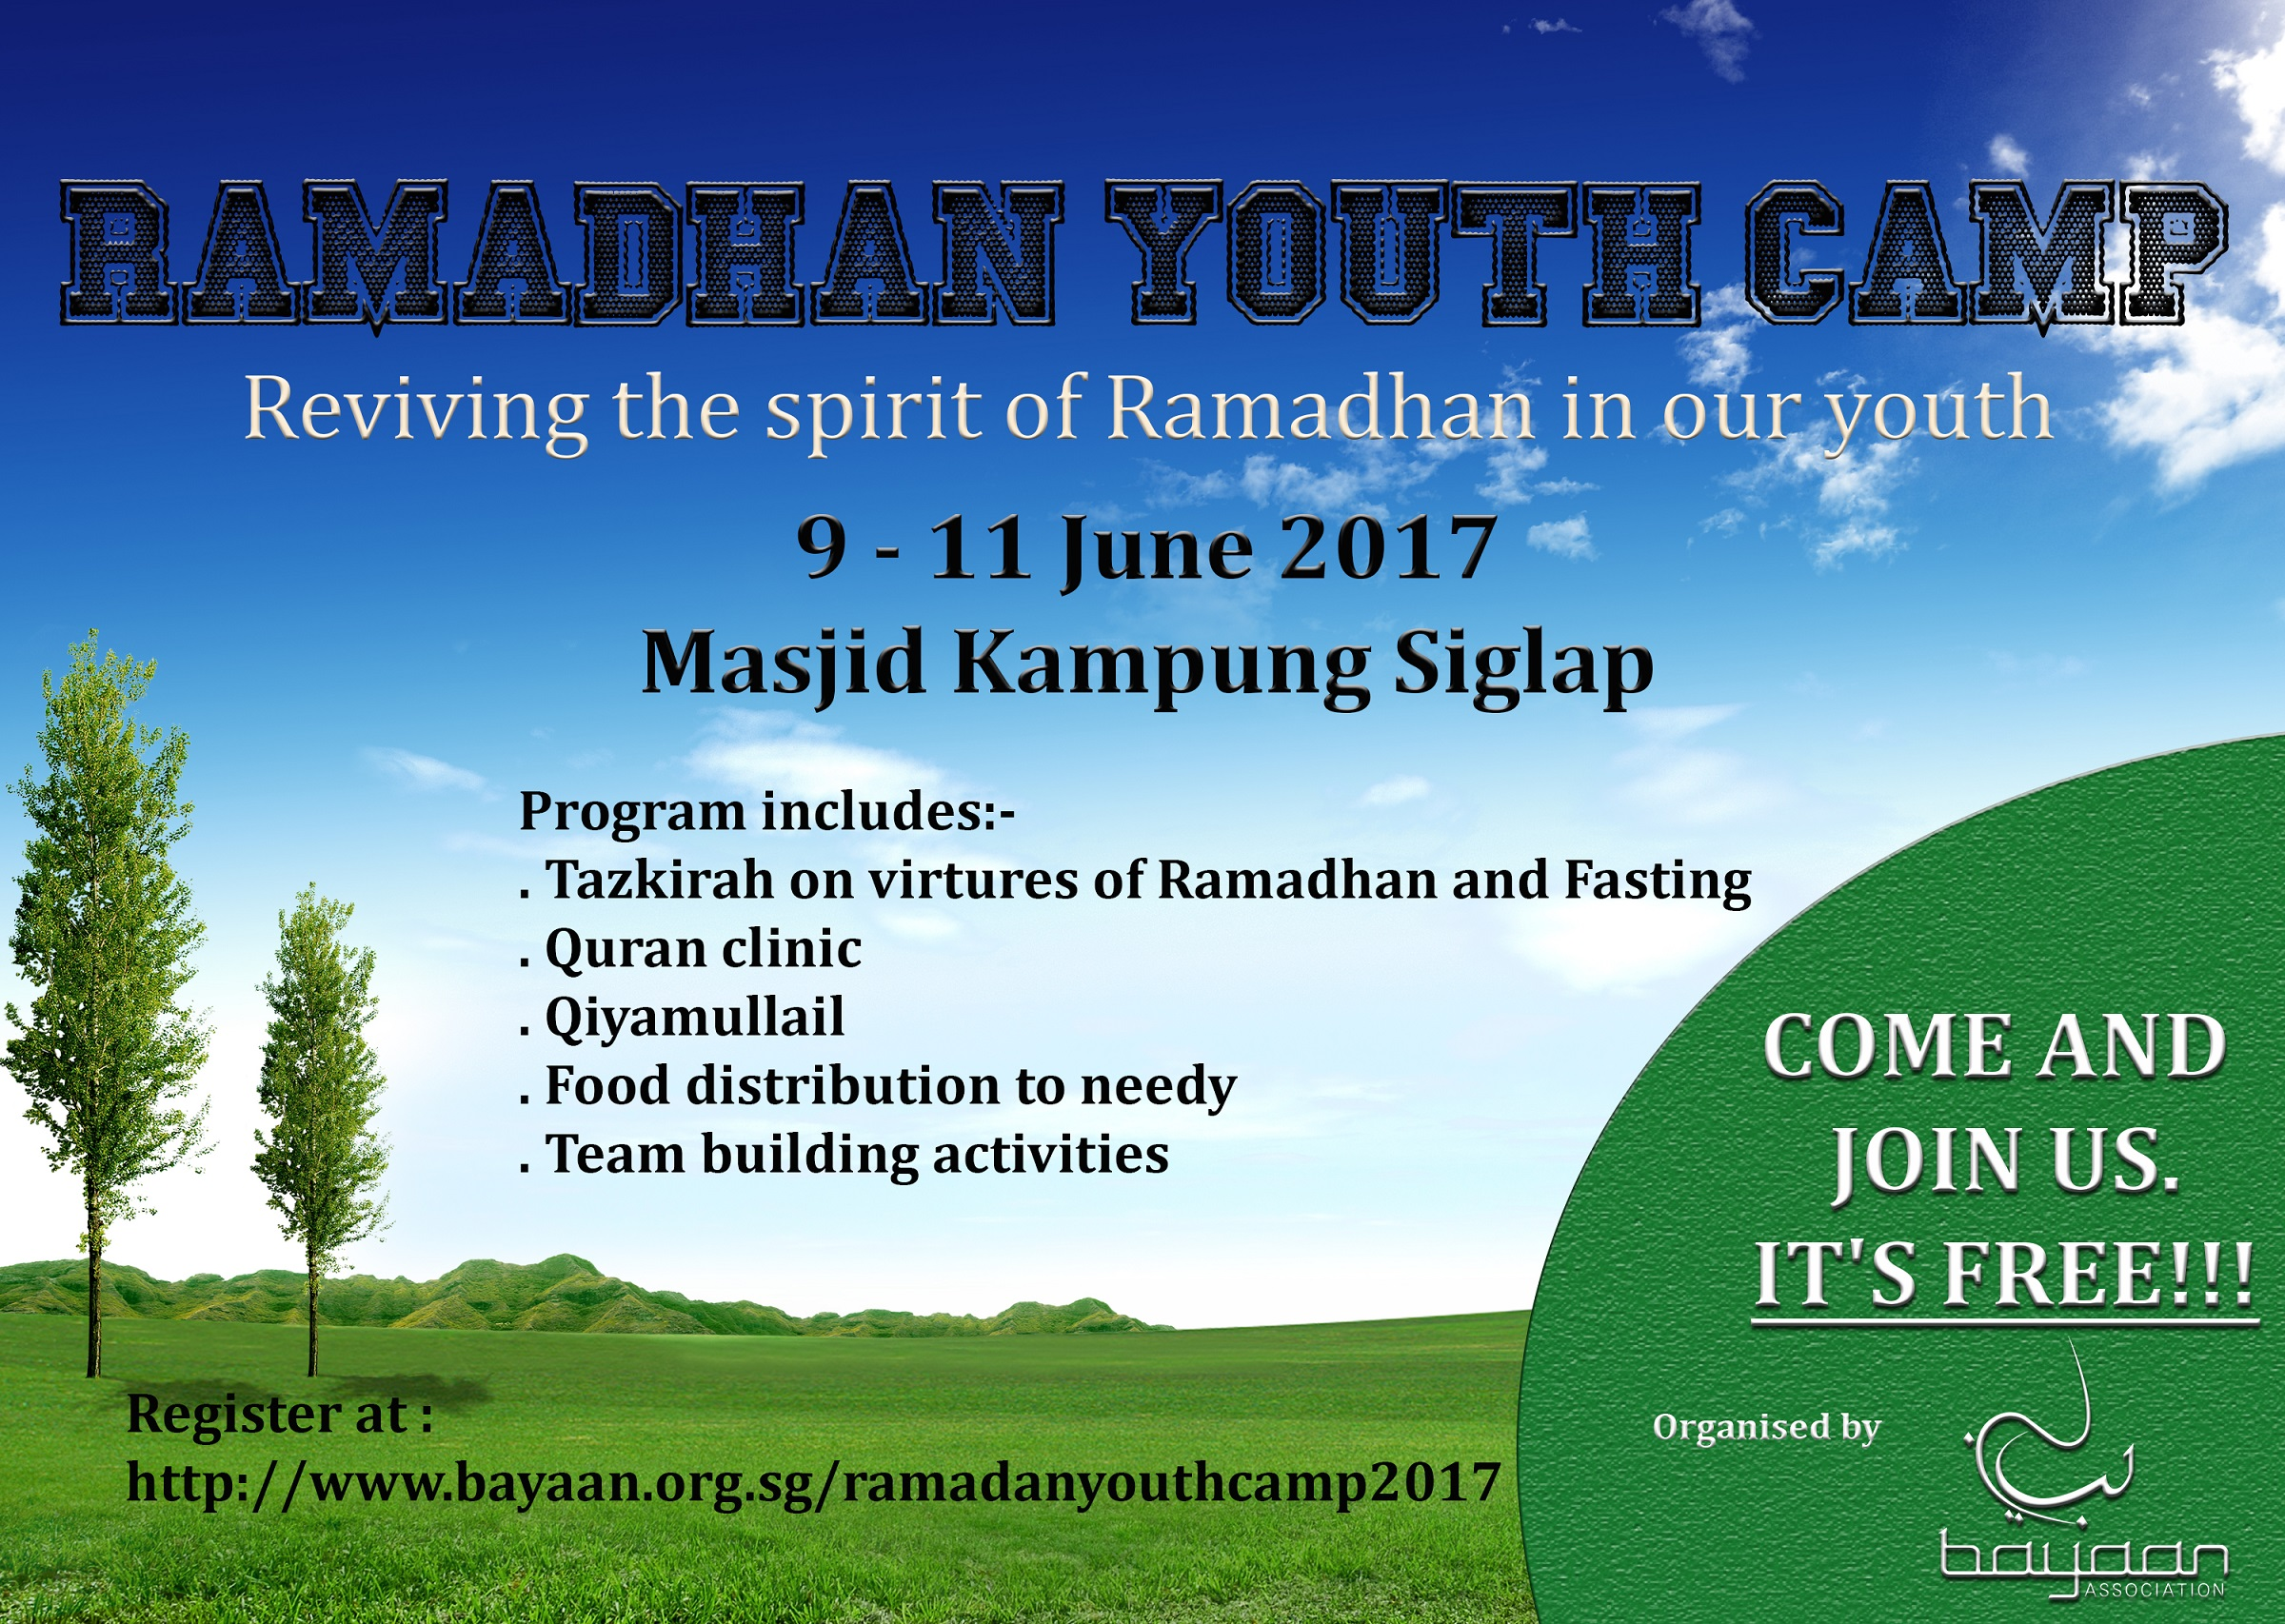 Ramadhan youth camp